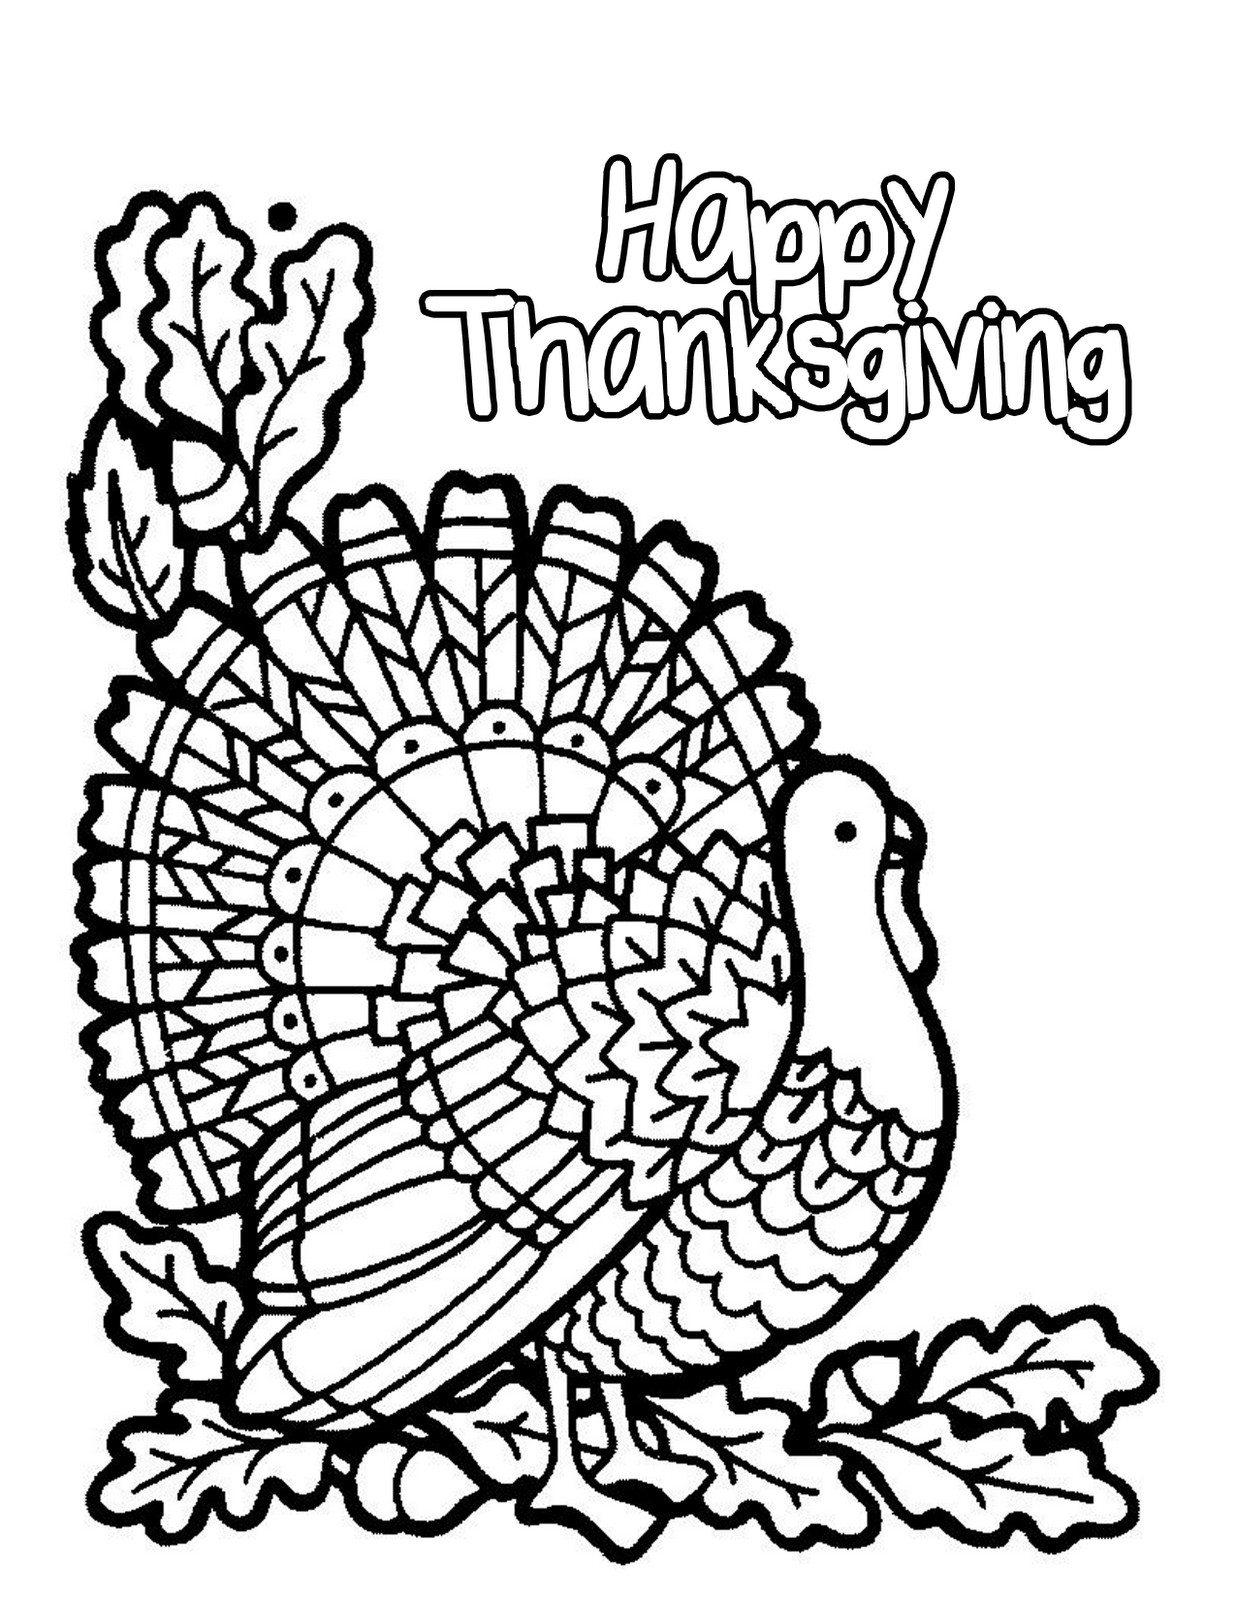 Printable Thanksgiving Coloring Pages Coloring Me Free Printable Thanksgiving Coloring Pages